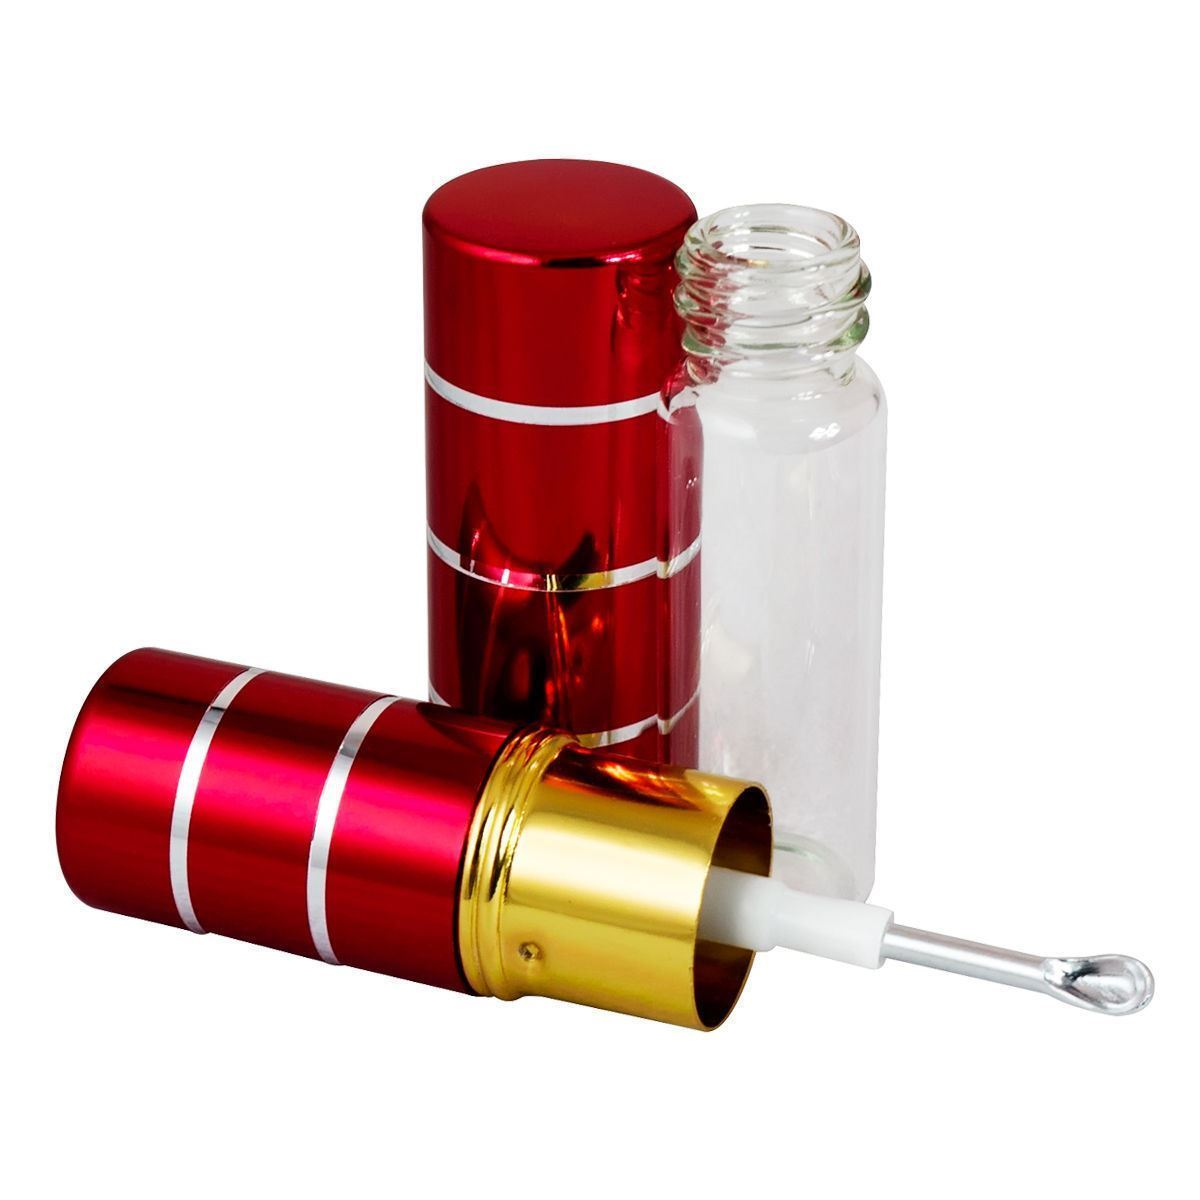 Perfume Atomizer with Snuff Vial & Spoon - Cheeky Ninjas